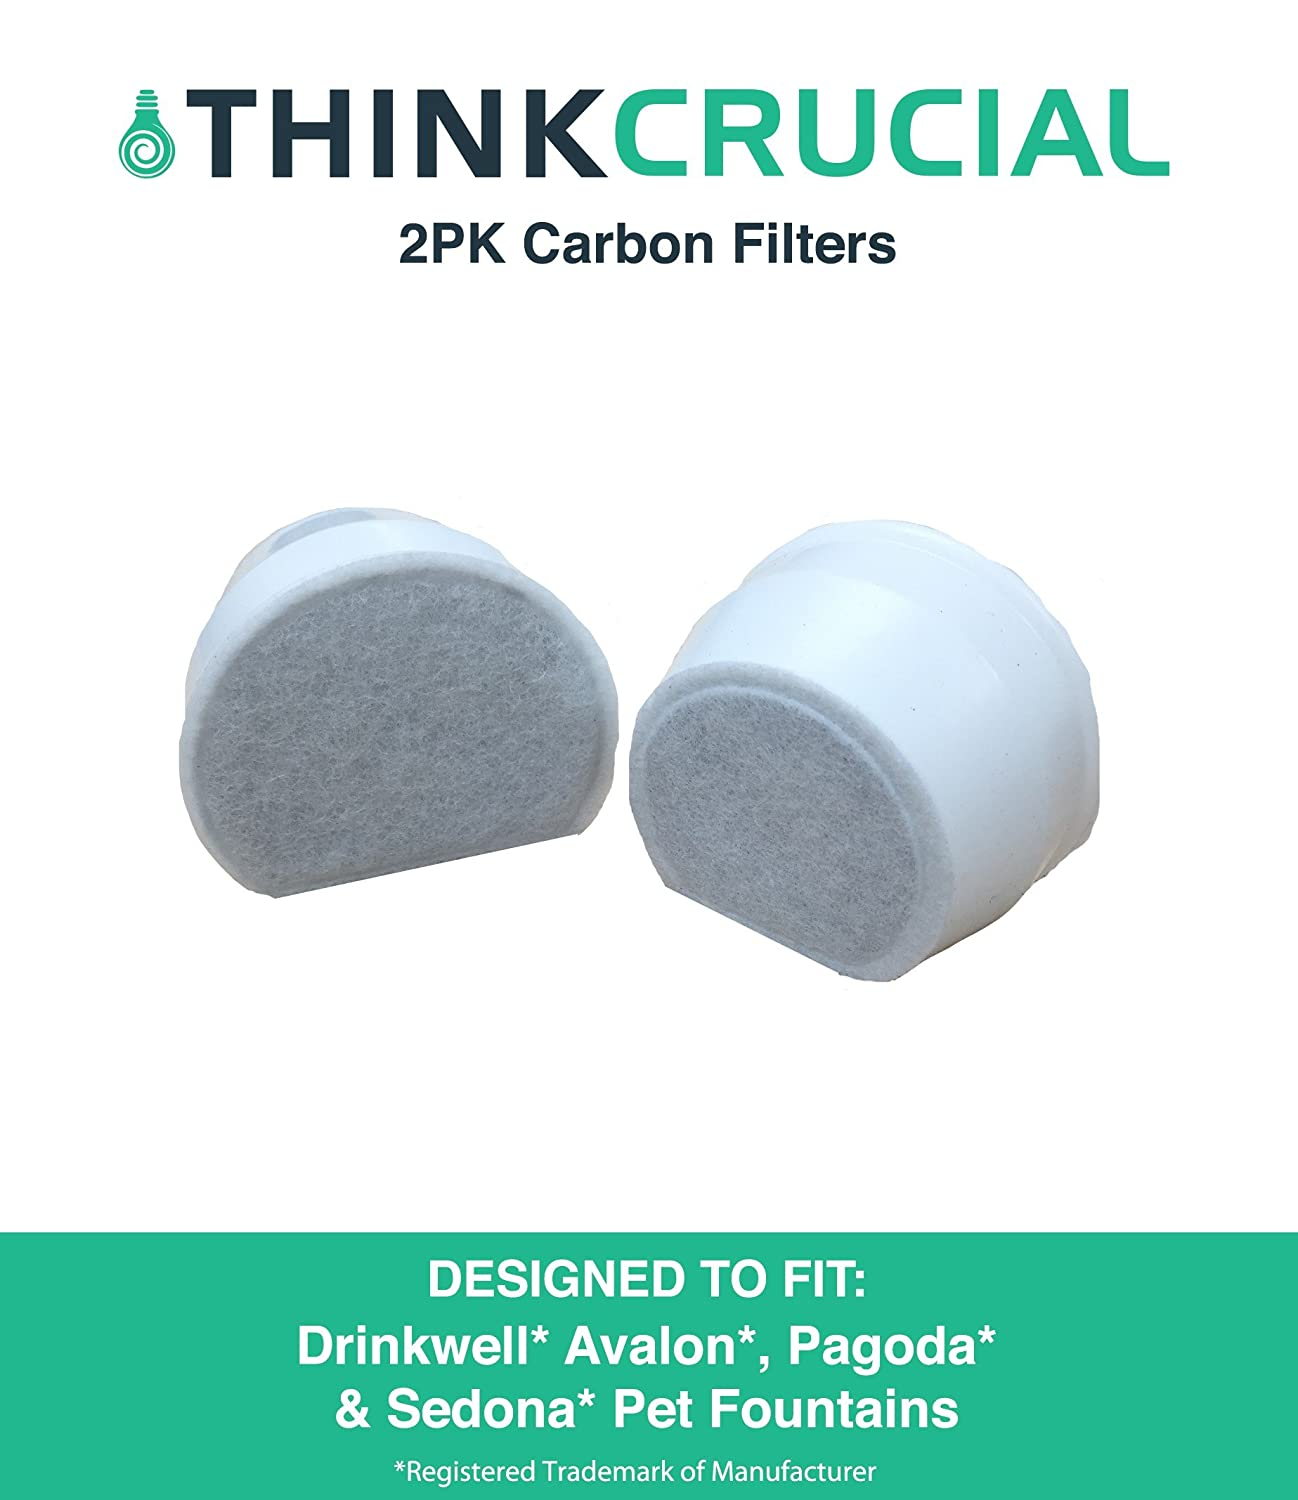 2 Replacements for Drinkwell Carbon Filters Fit Avalon, Pagoda & Sedona Drinkwell Pet Fountains, by Think Crucial